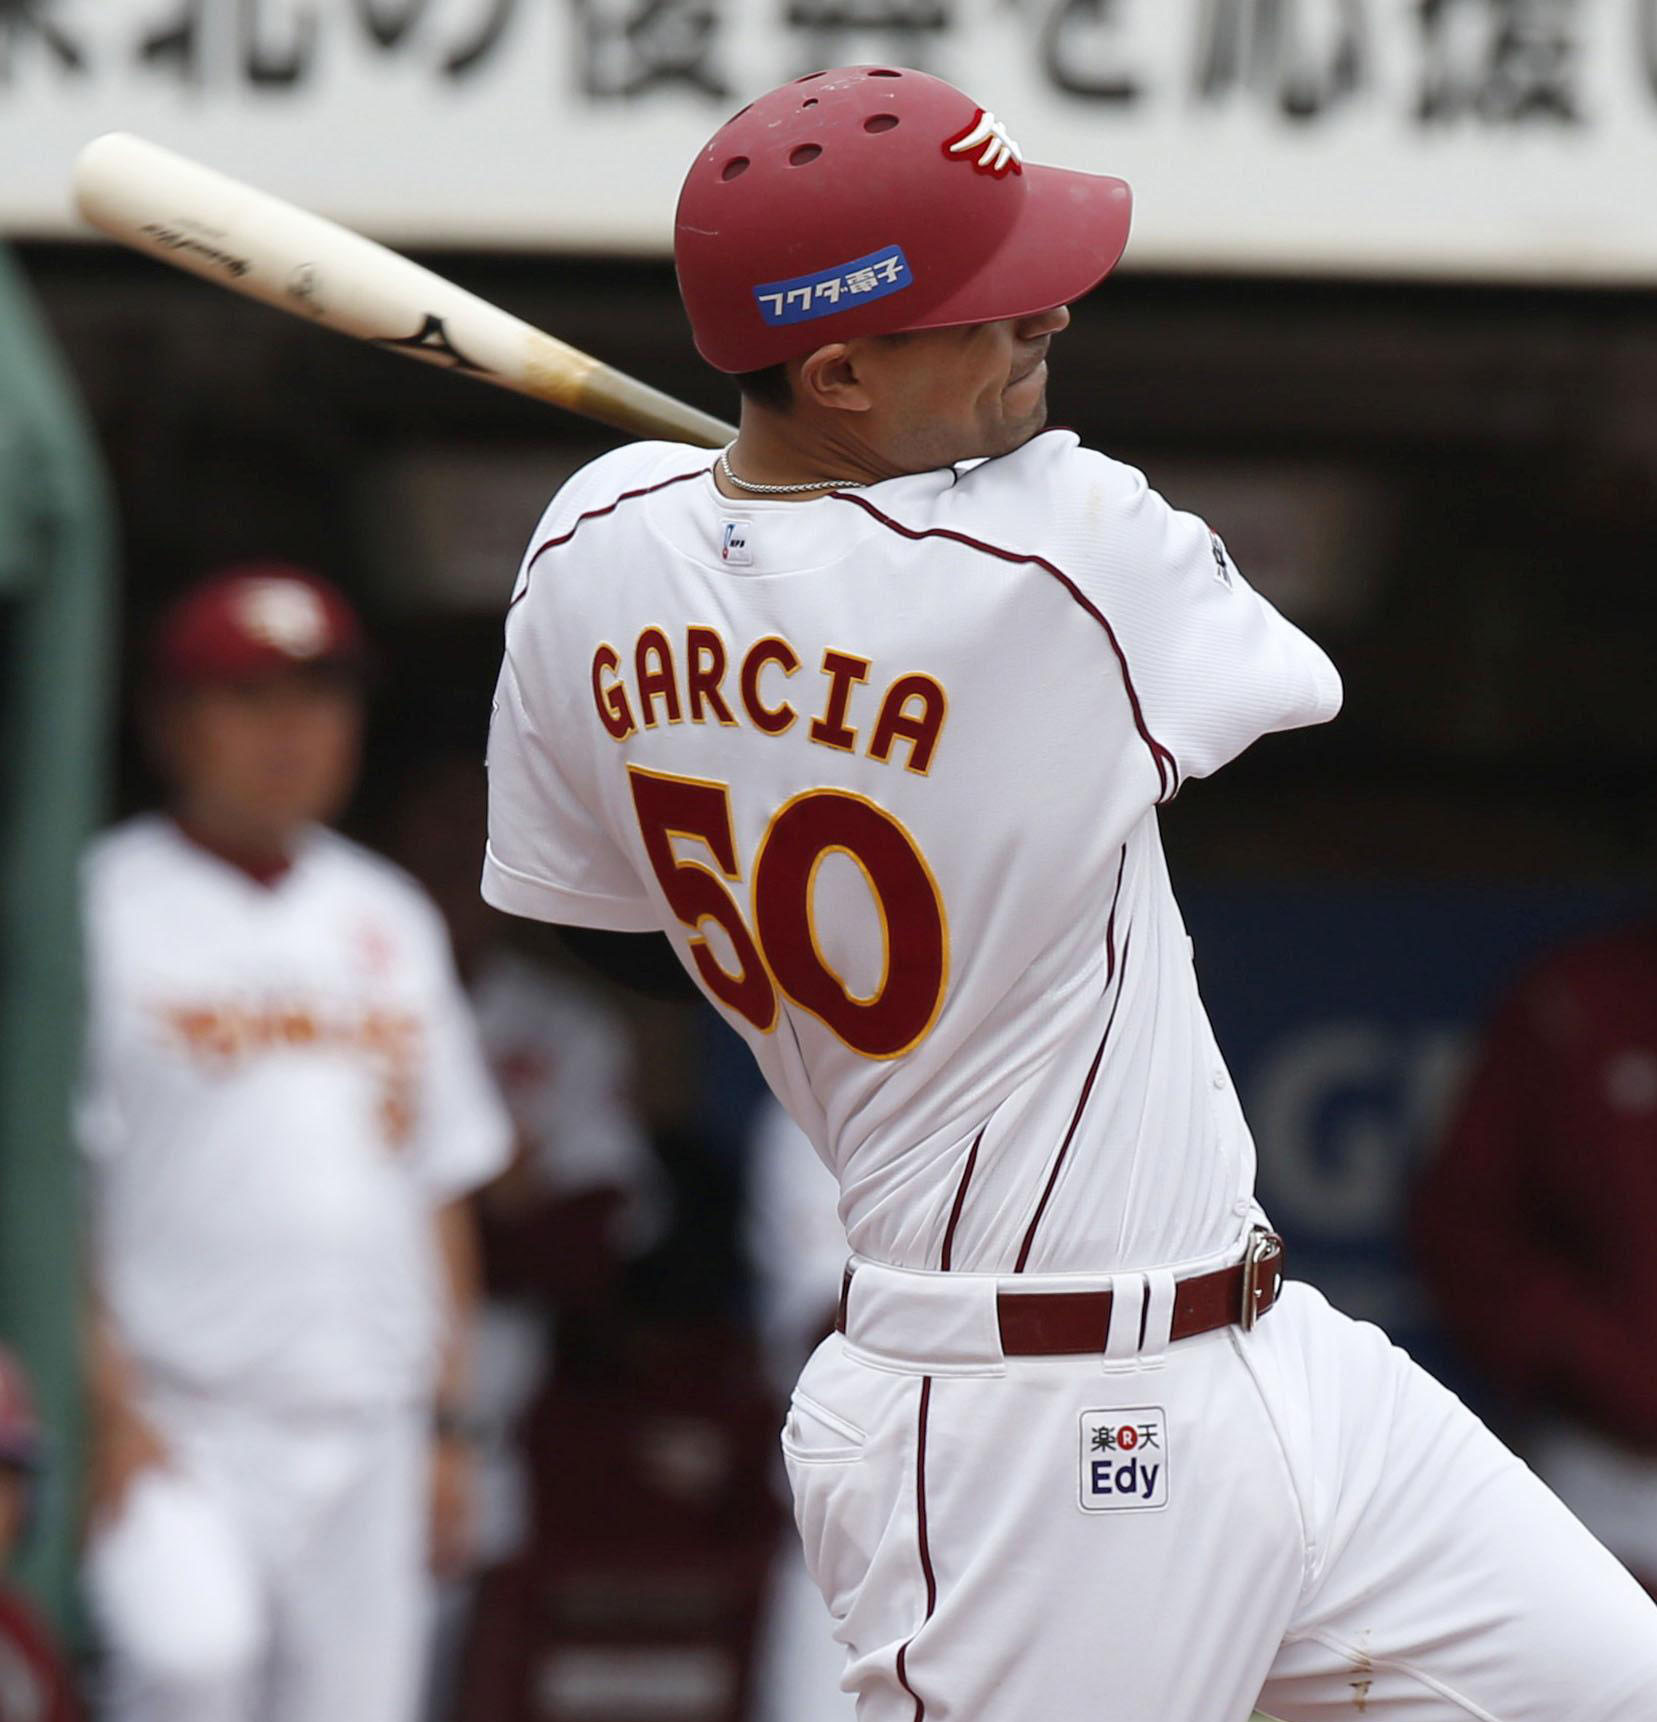 There it goes: The Eagles' Luis Garcia hits a solo homer in the seventh inning on Monday. | KYODO